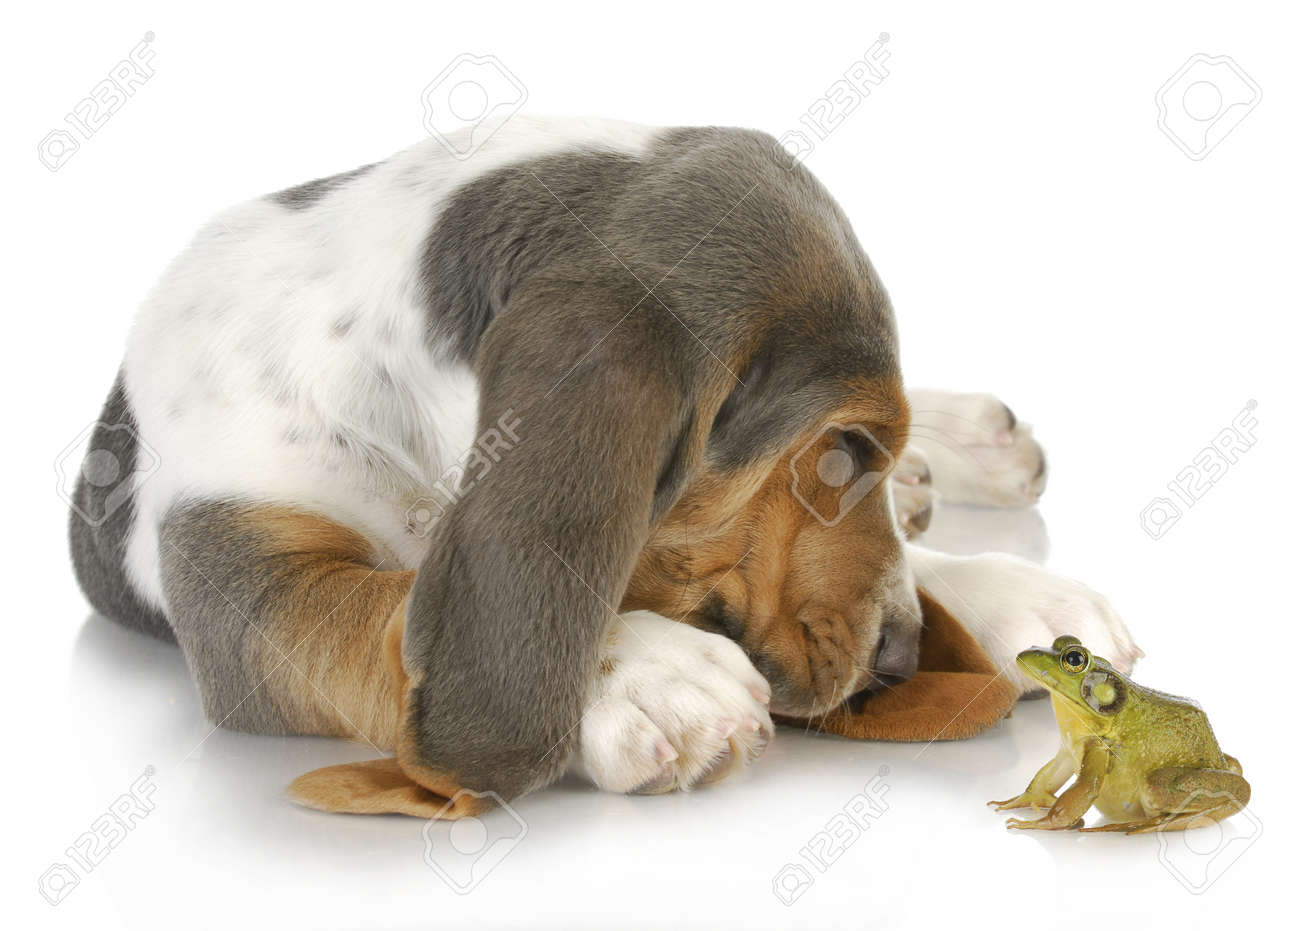 unusual friends - cute basset hound and bullfrog interacting on white background Stock Photo - 15608102